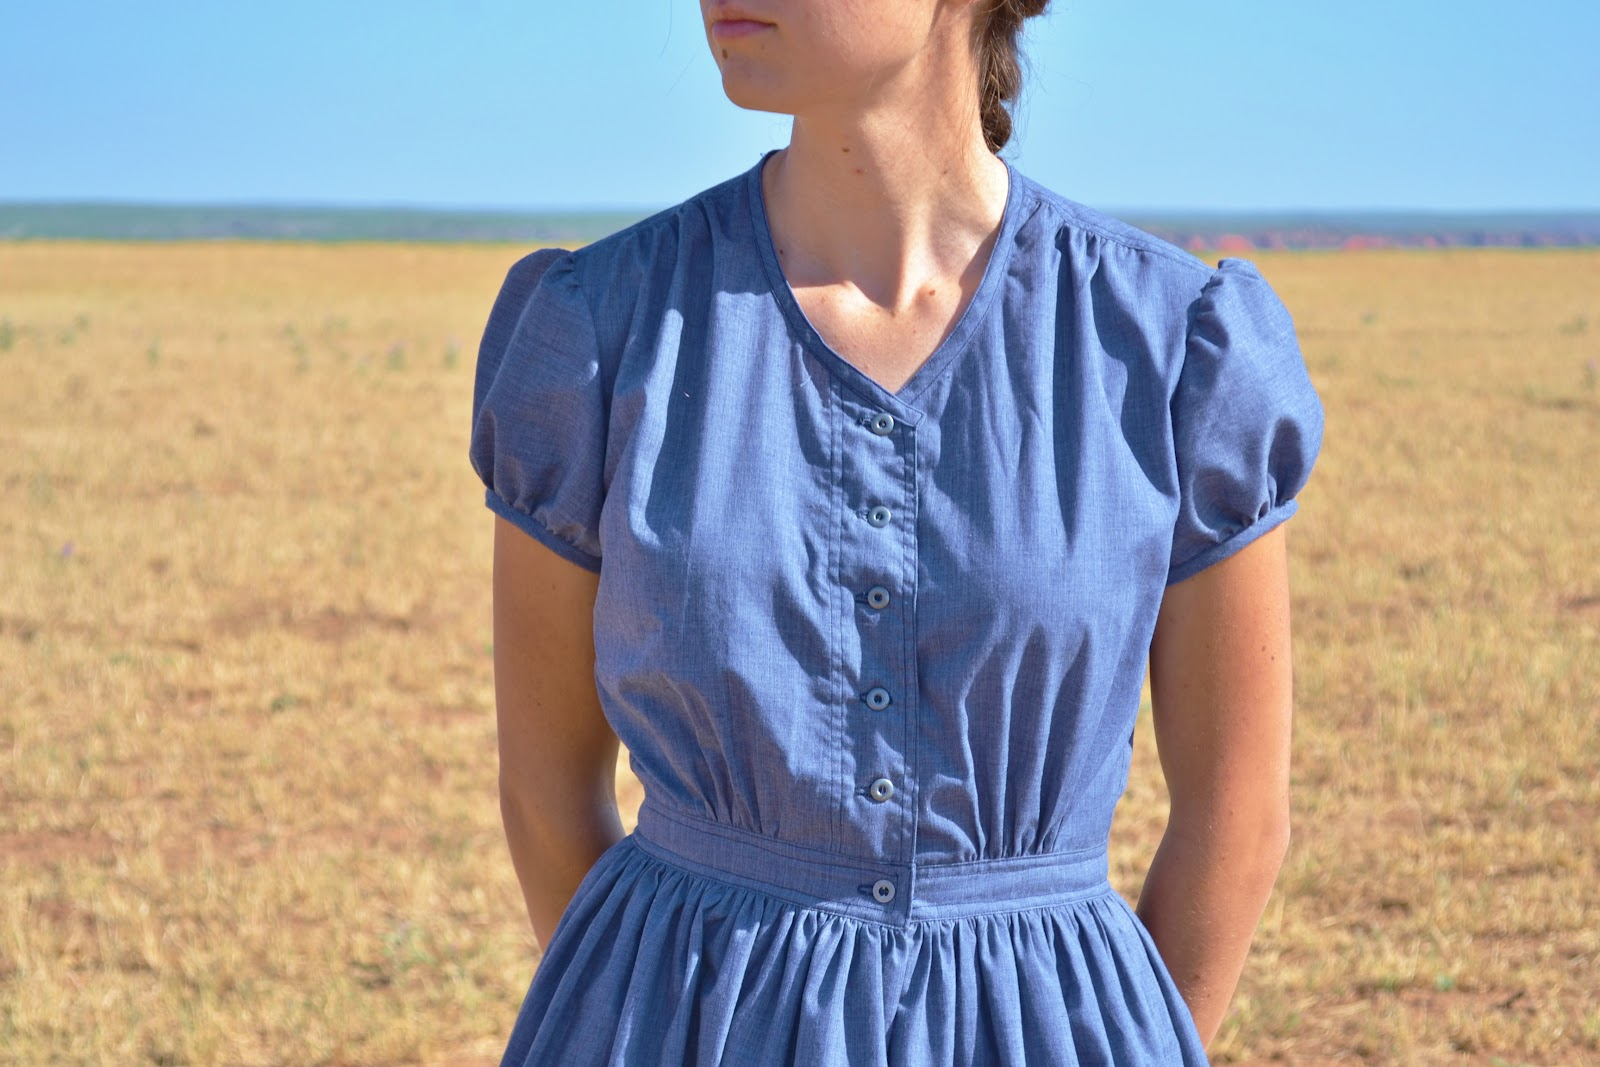 The fabric is a very lightweight cotton almost a lawn though its woven to mimic denim and the dress is unlined